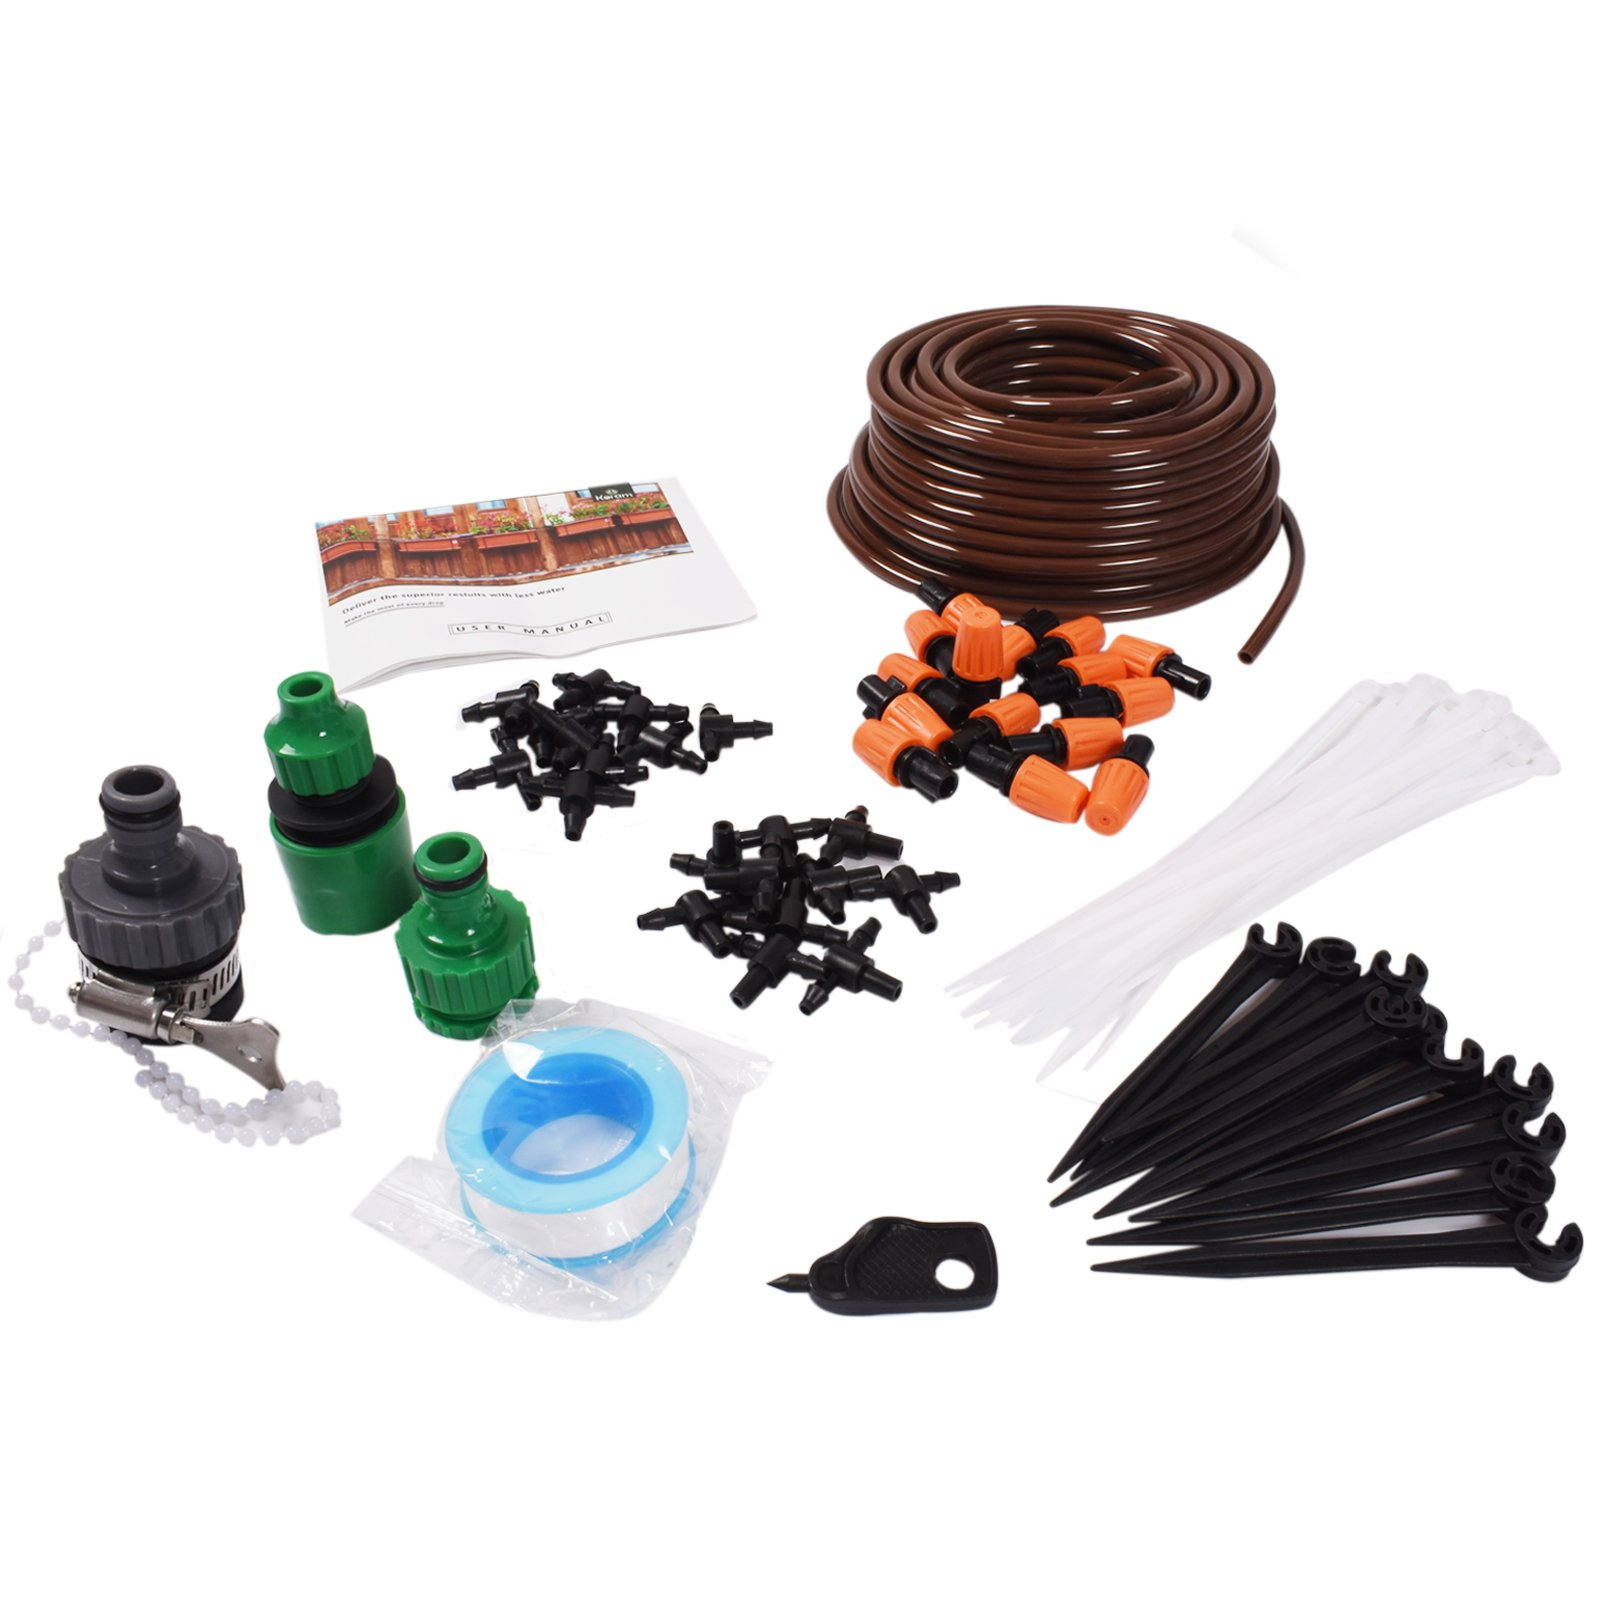 """KORAM Patio Plant Watering Kit 50ft 1/4"""" Blank Distribution Tubing Spray Misters Watering System Kits Accessories for Patio Garden Greenhouse Nozzles Misting Cooling - IR001"""